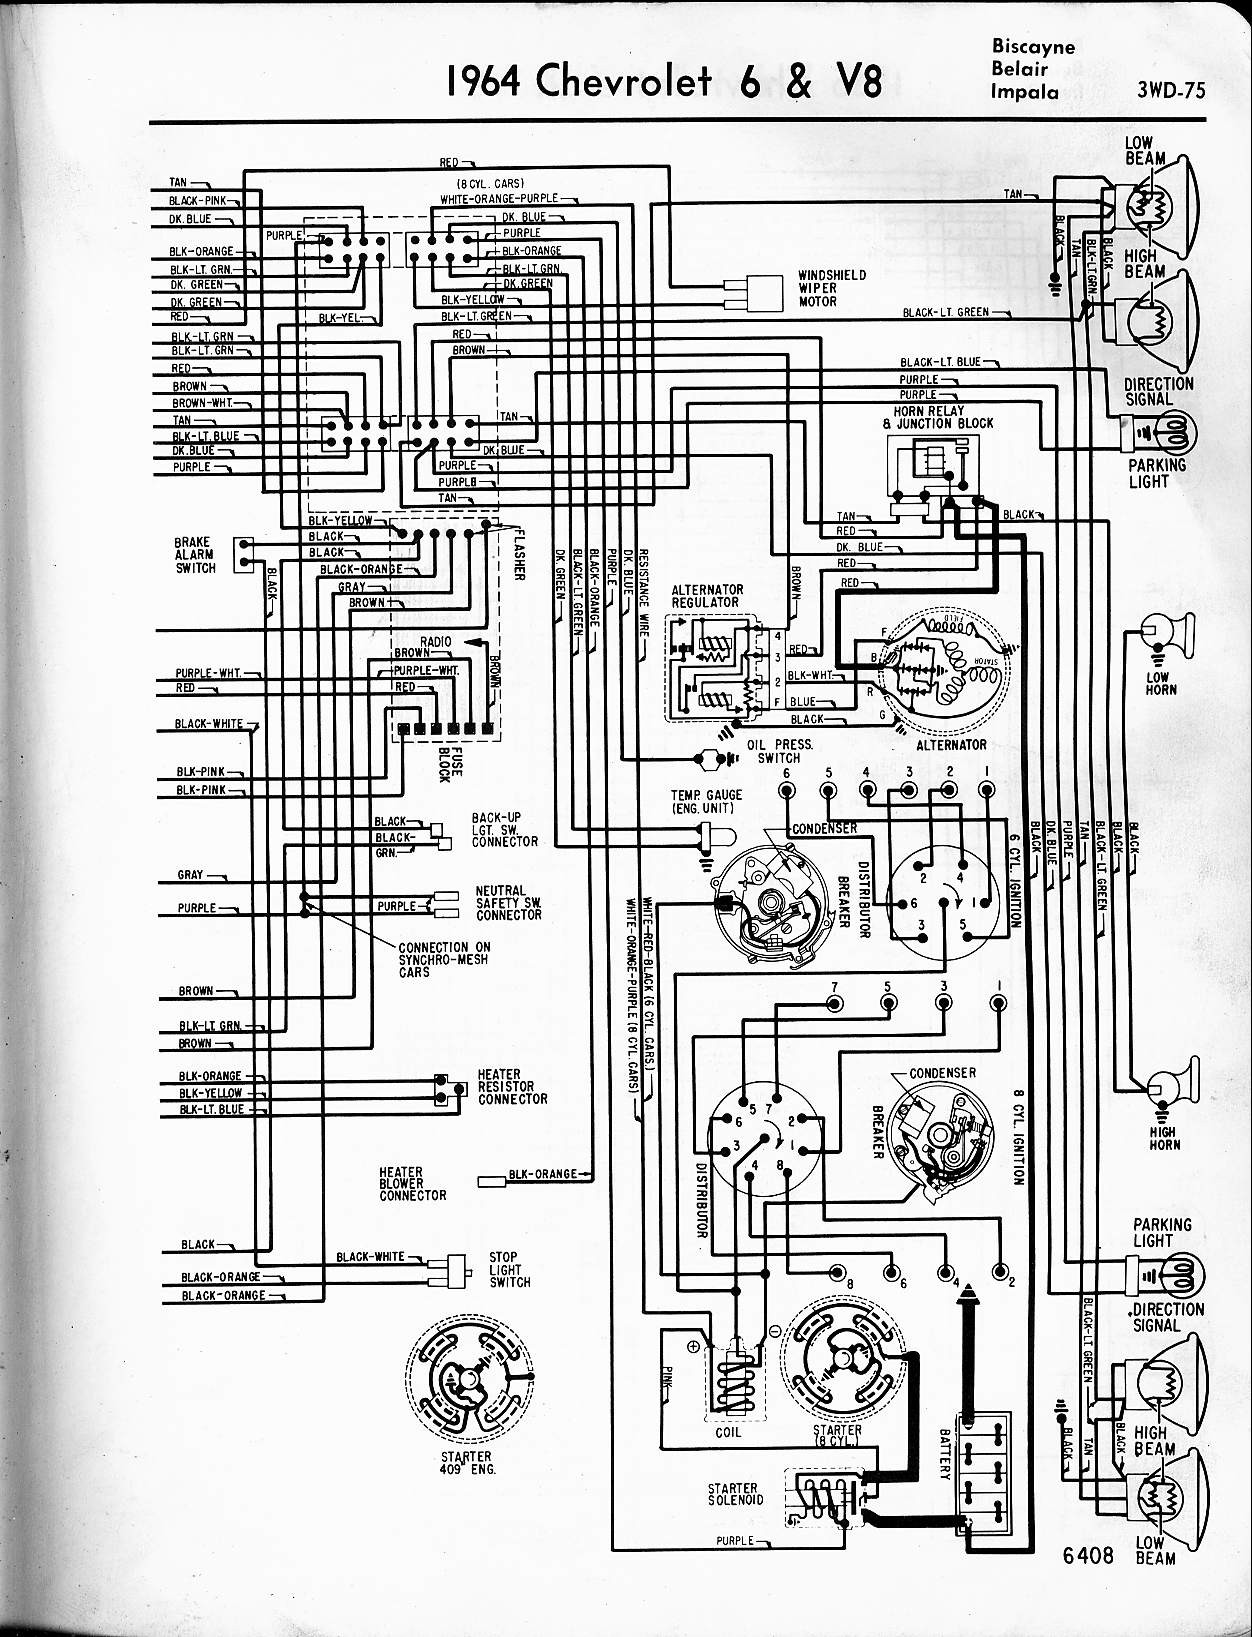 Motor Wiring Diagram 2000 Chevy Impala Auto Electrical Wiring 1957 Chevy  Bel Air Wiring Diagram Trans 2000 Impala Wiring Diagrams